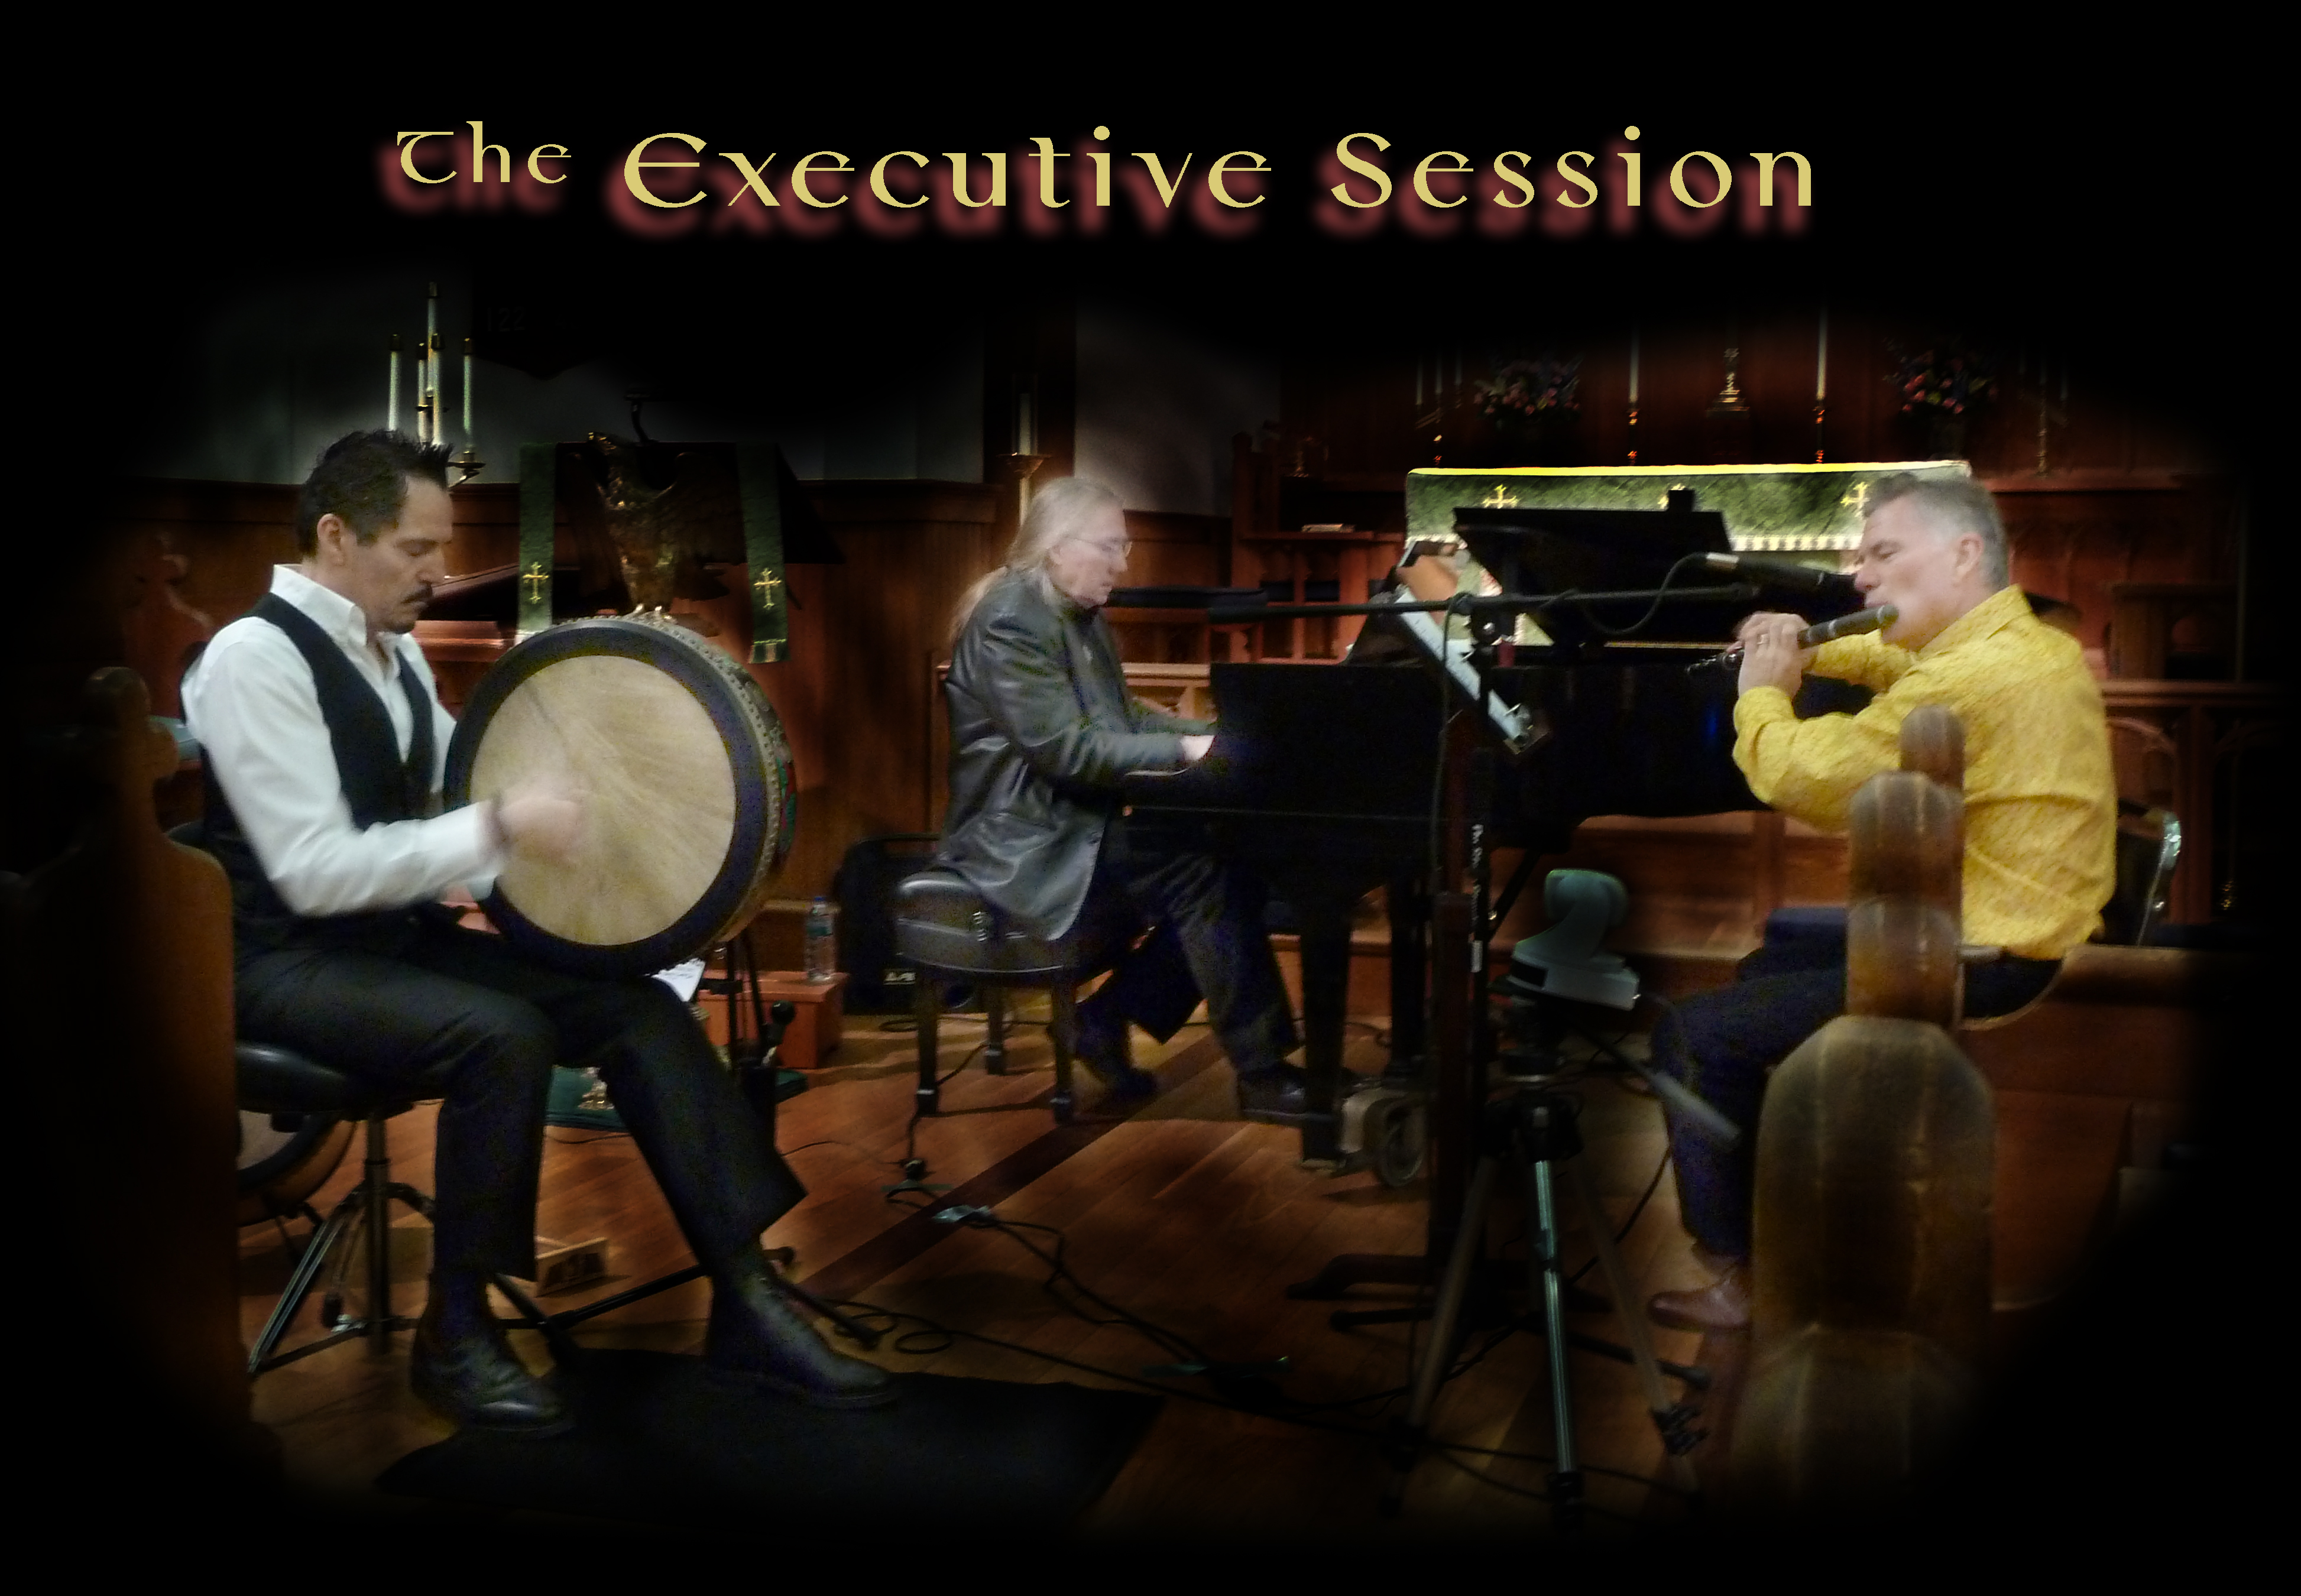 The Executive Session